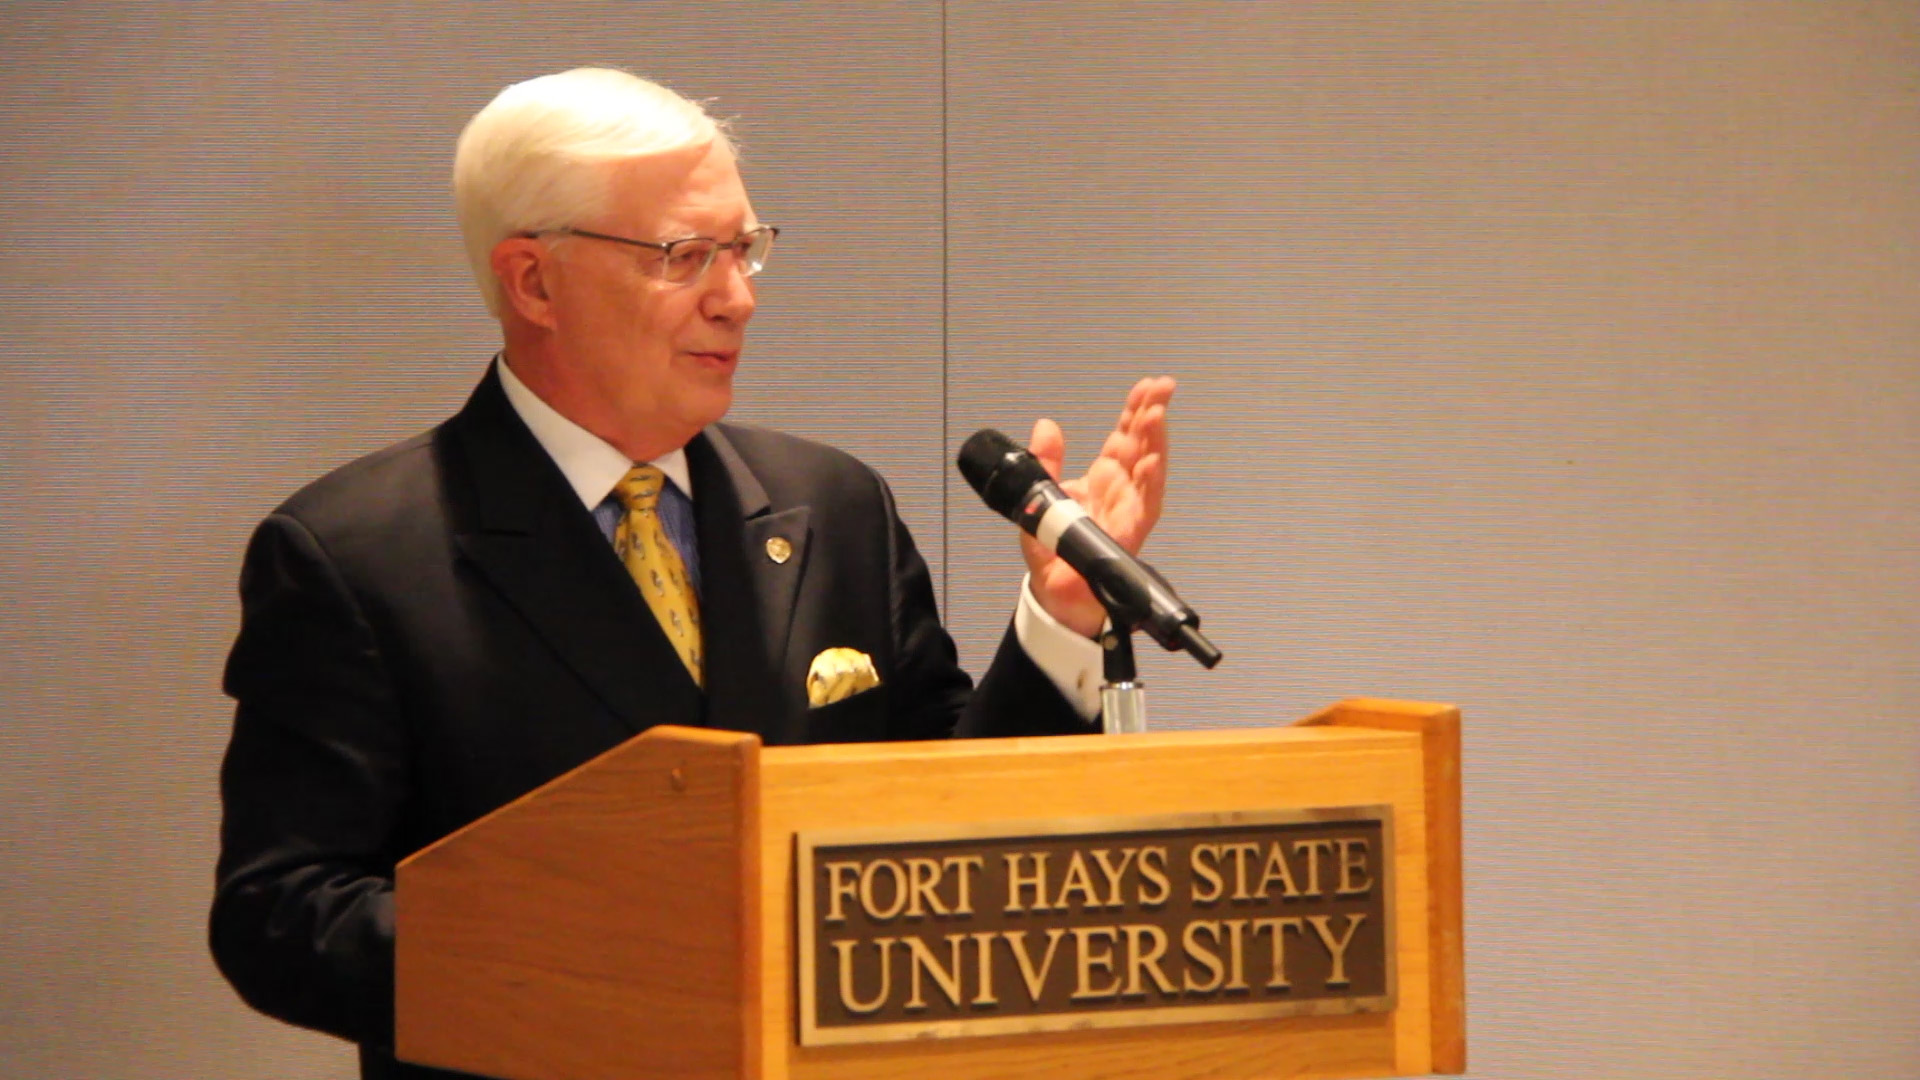 President Edward Hammond announces his retirement at the end of the academic year